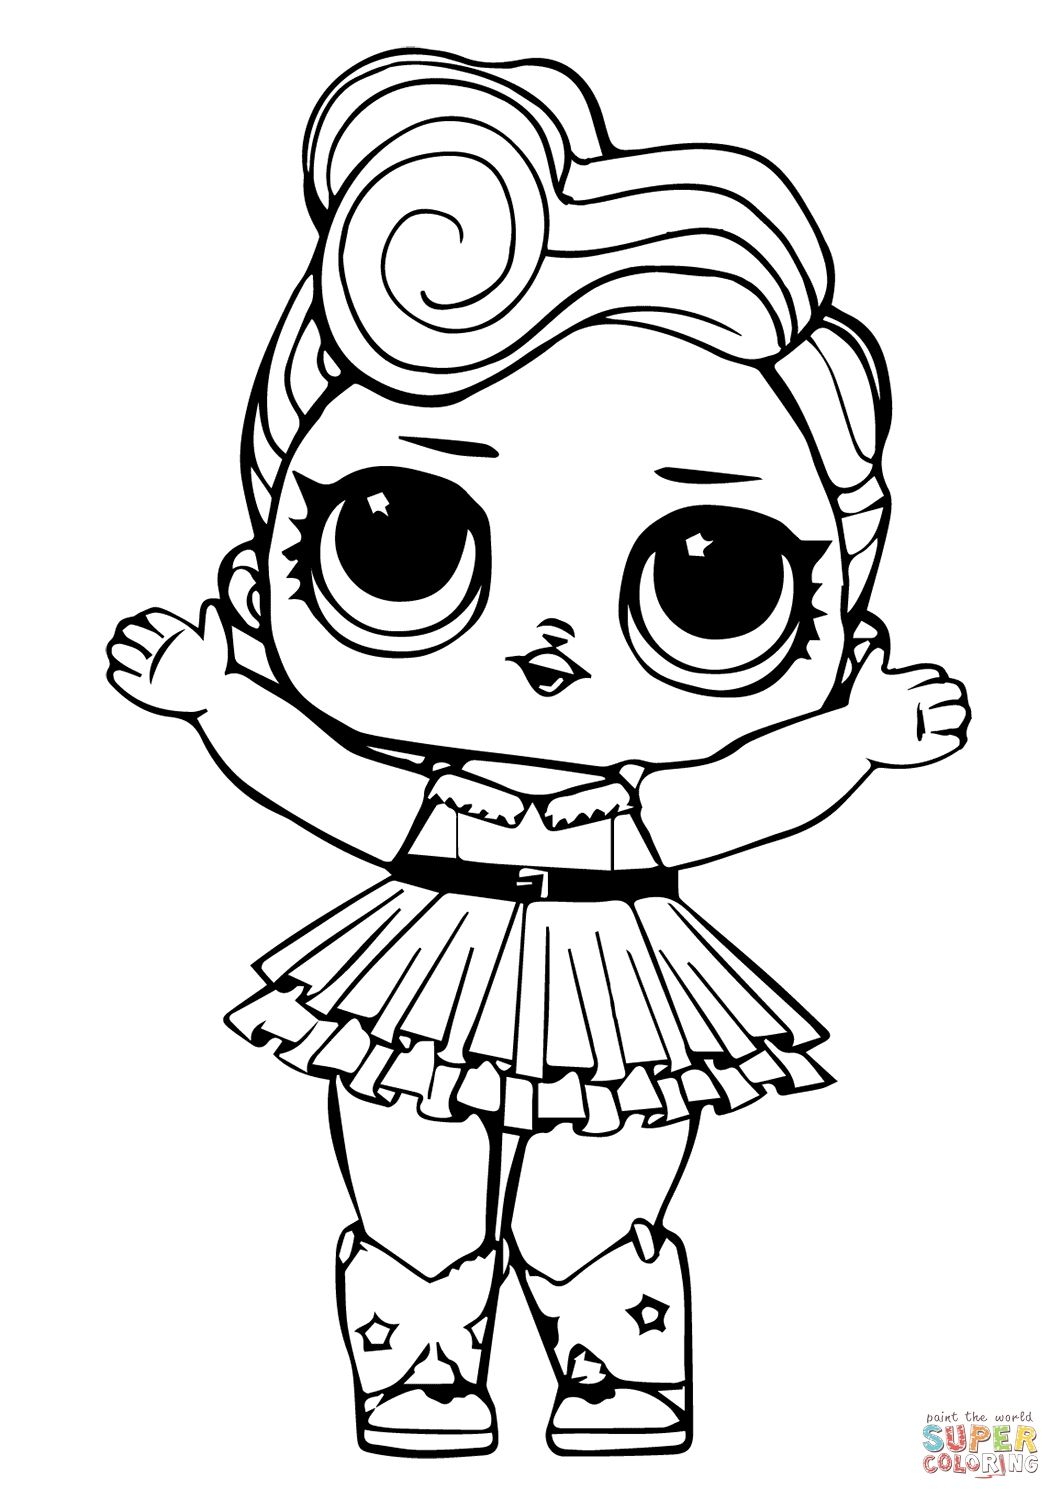 Lol Coloring Pages Black And White Coloring Pages Allow Kids To Accompany Their Favorit Unicorn Coloring Pages Animal Coloring Pages Printable Coloring Book